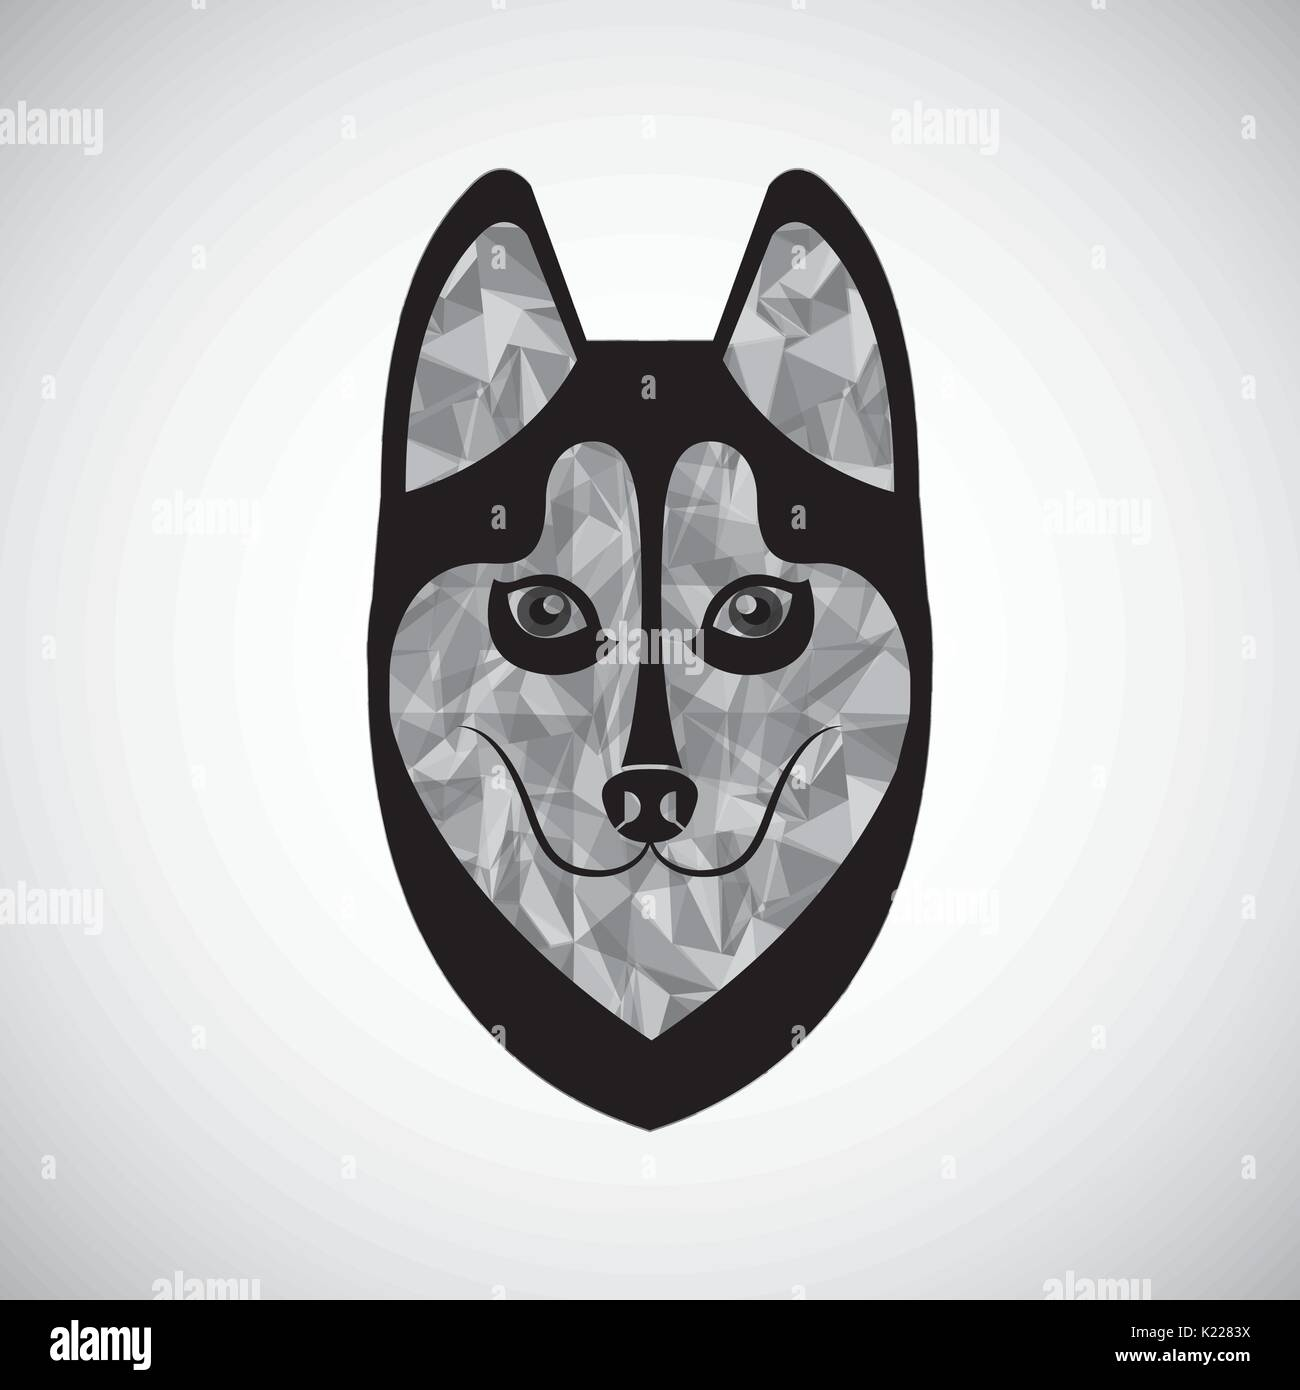 siberian wolf design  - Stock Vector